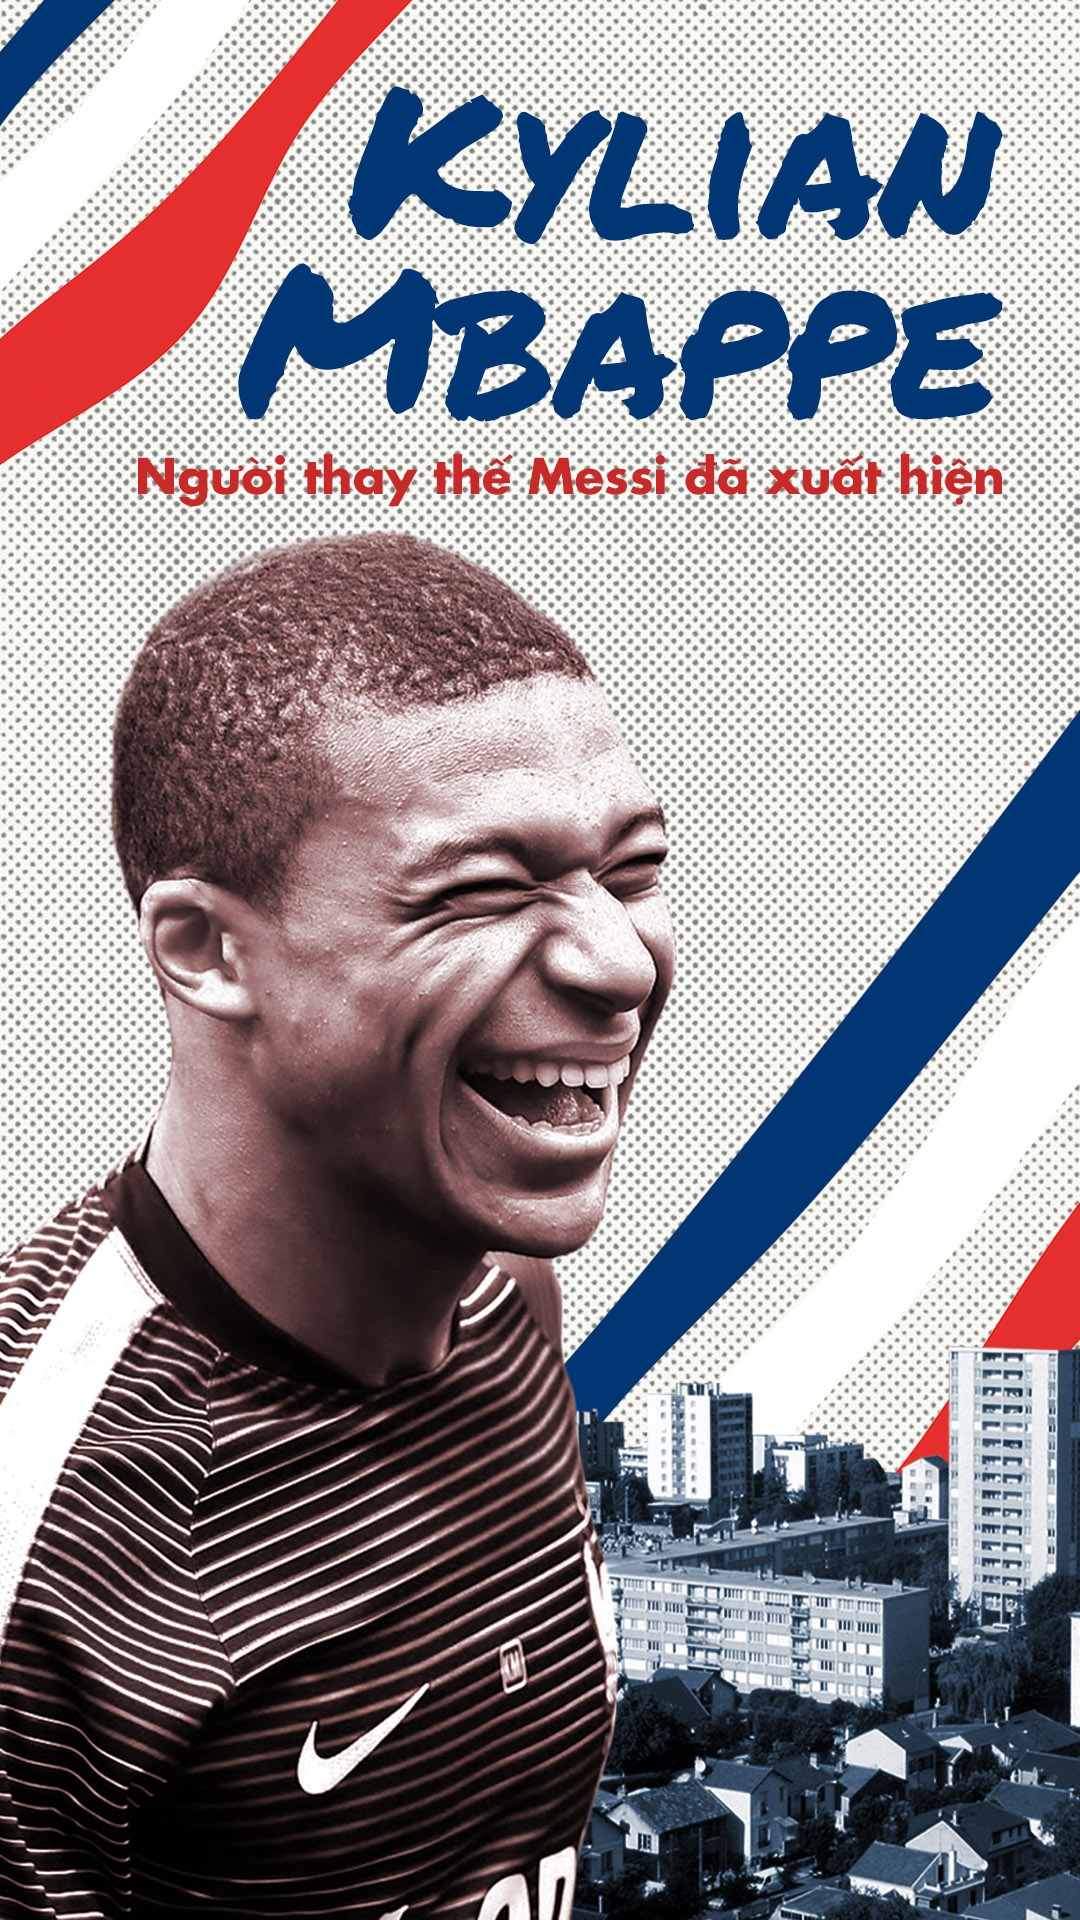 Kylian Mbappe, nguoi thay the Messi da xuat hien hinh anh 1